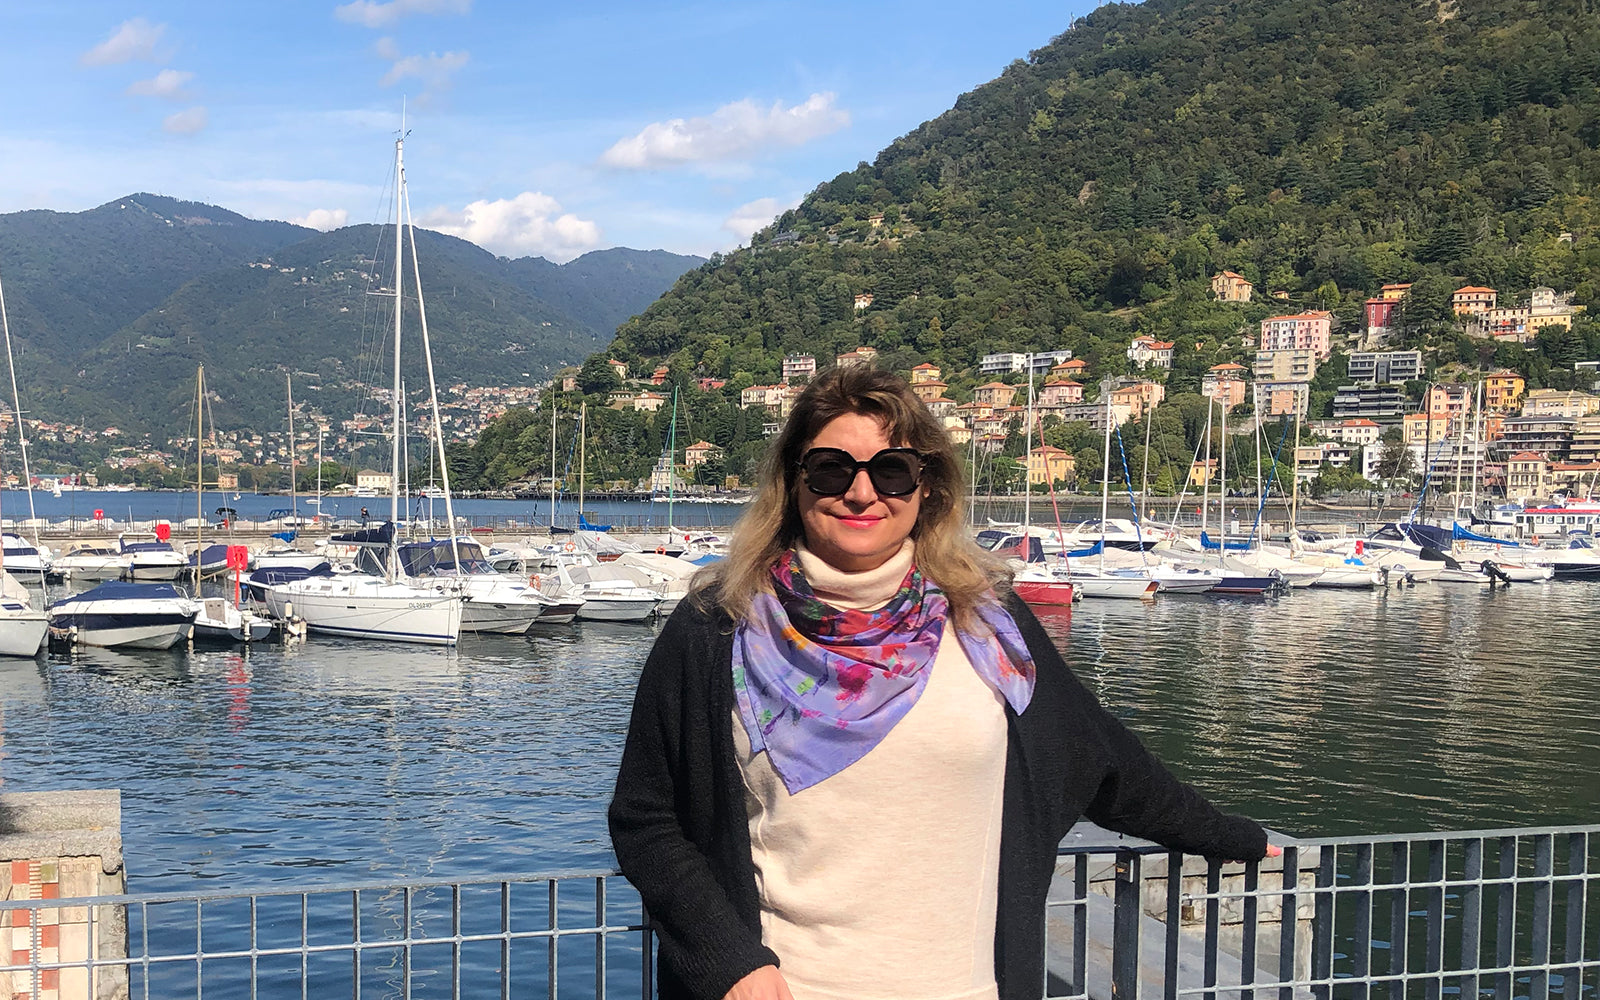 Impressionist artist and silk-scarf designer Oksana Johnson at the harbor in Como, Italy, wearing her Lavender Dream 100% silk scarf, with Lake Como and hills in the background.